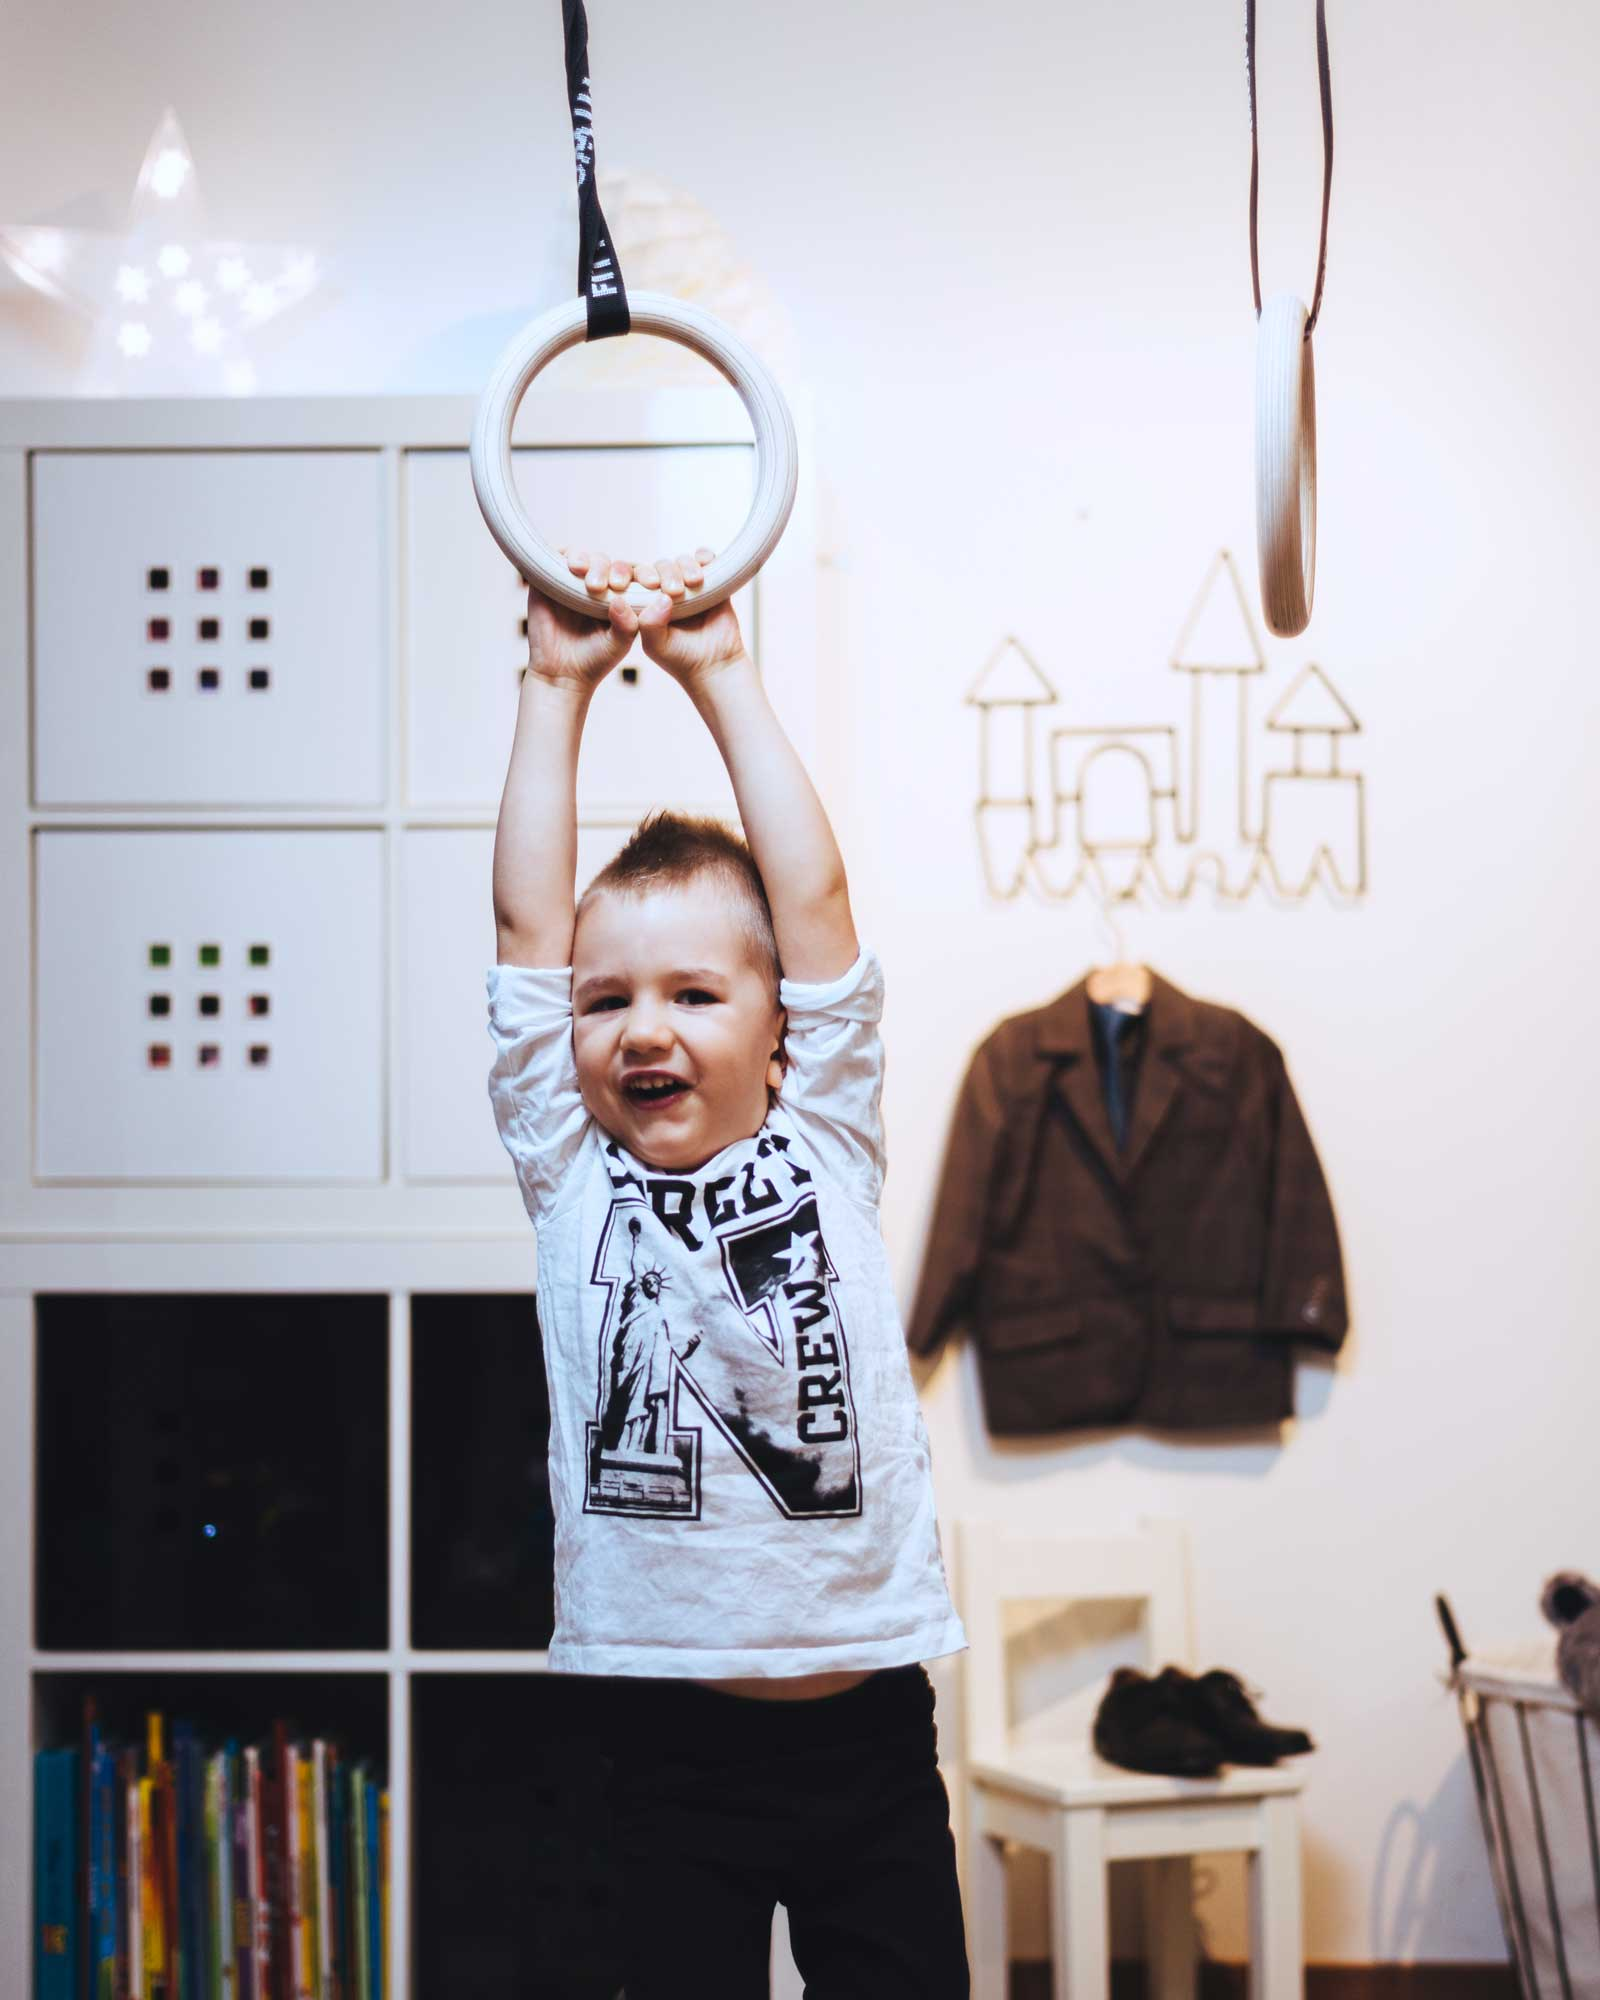 FitWood Gym Rings for Kids: 1 piece of fitness kit, 5 ways to have fun with it